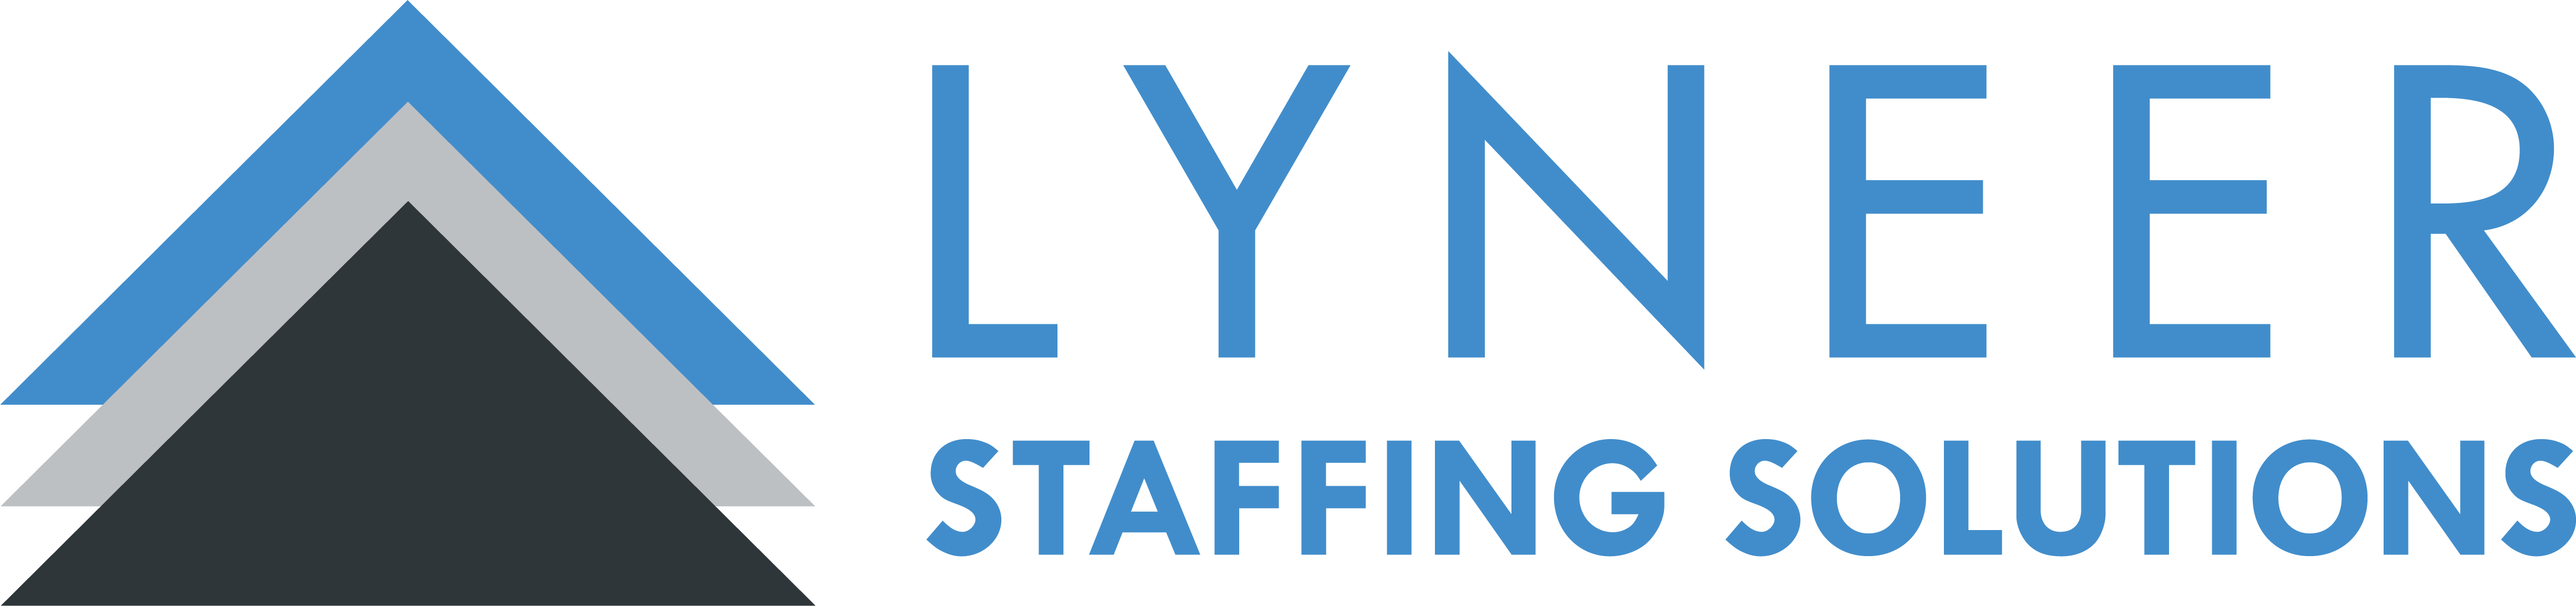 Infinity Staffing Solutions